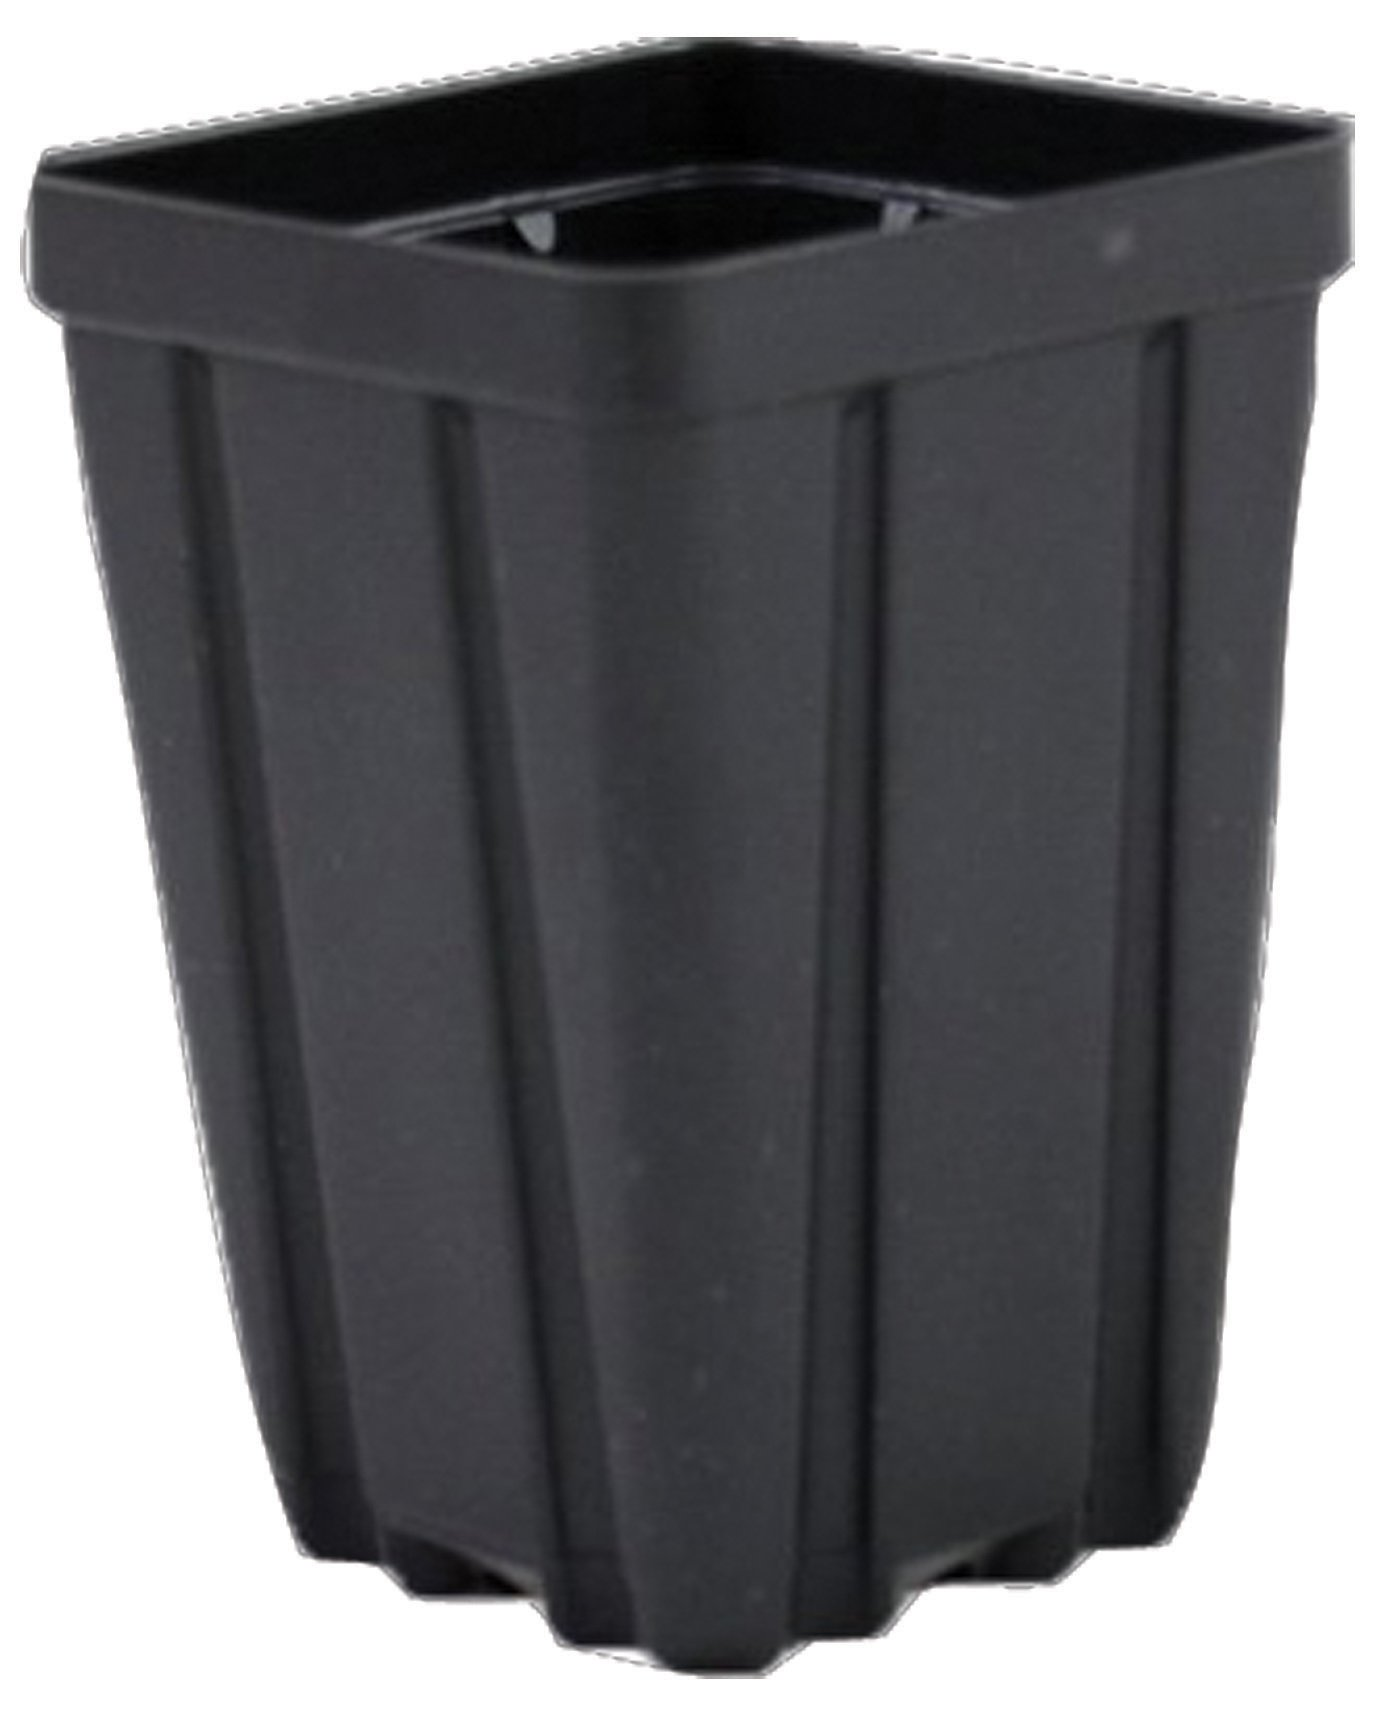 Square Greenhouse Pots 3.5 inch x 5 inch- Black - Plastic - Deep - Case of 450 by Growers Solution